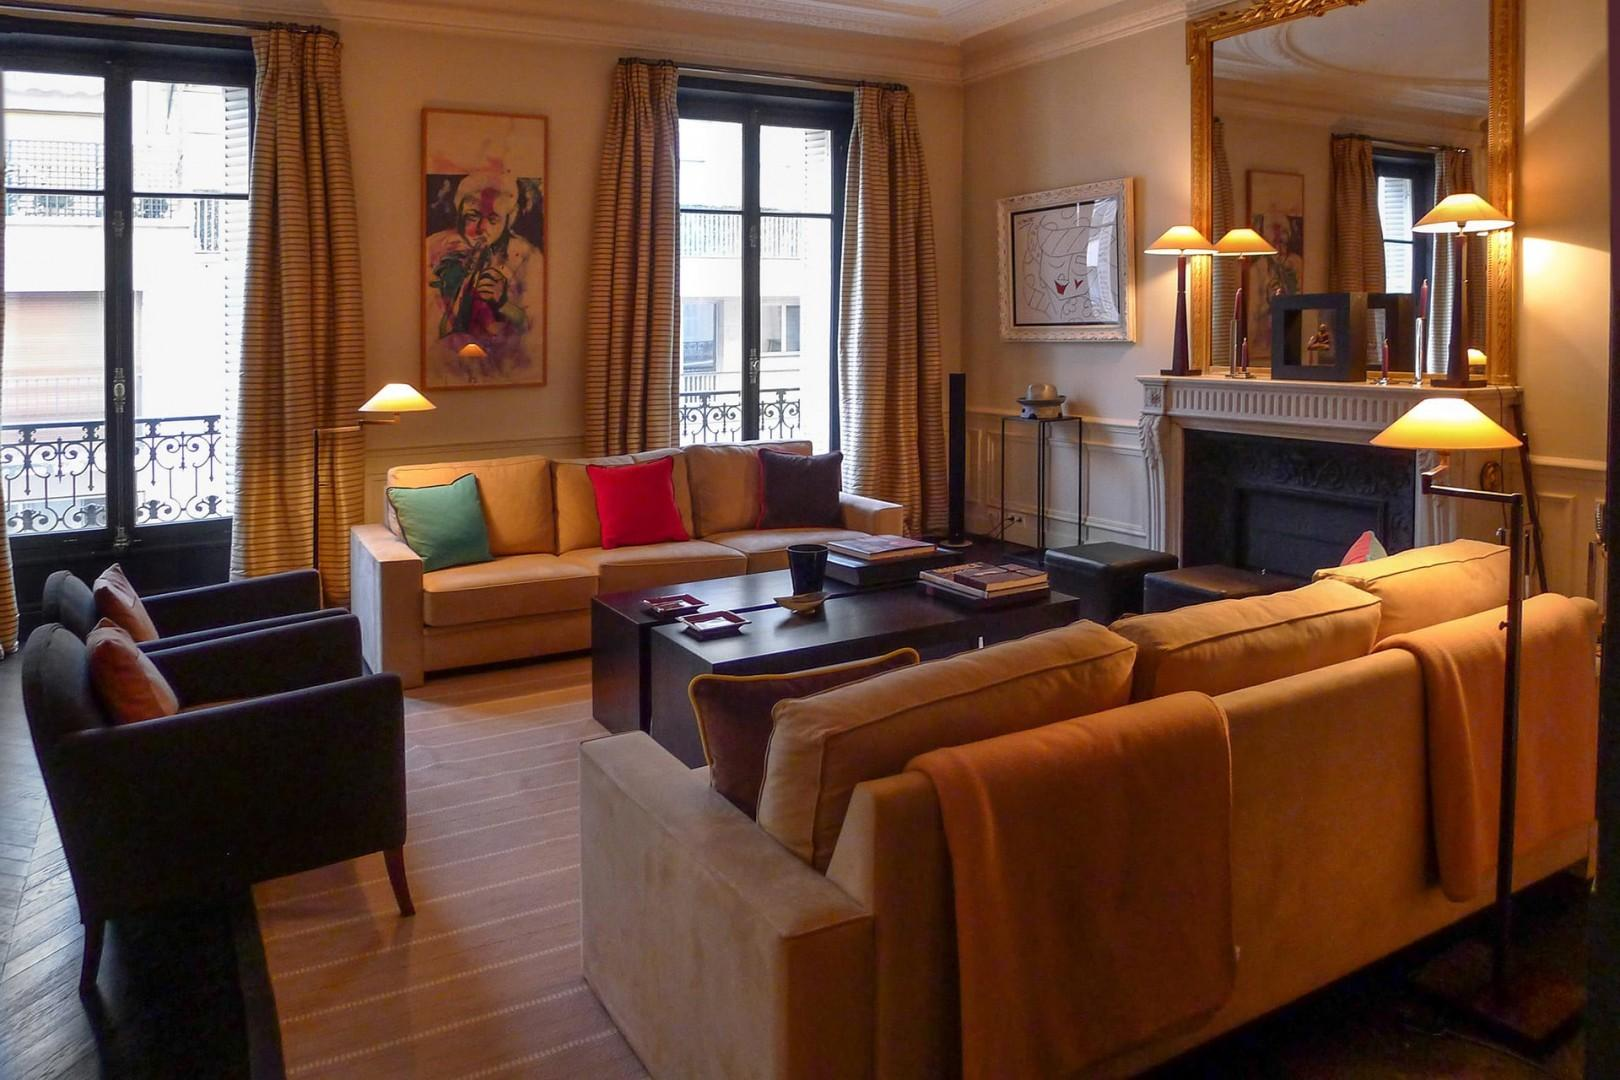 Spend peaceful evenings in this comfortable home in Paris.